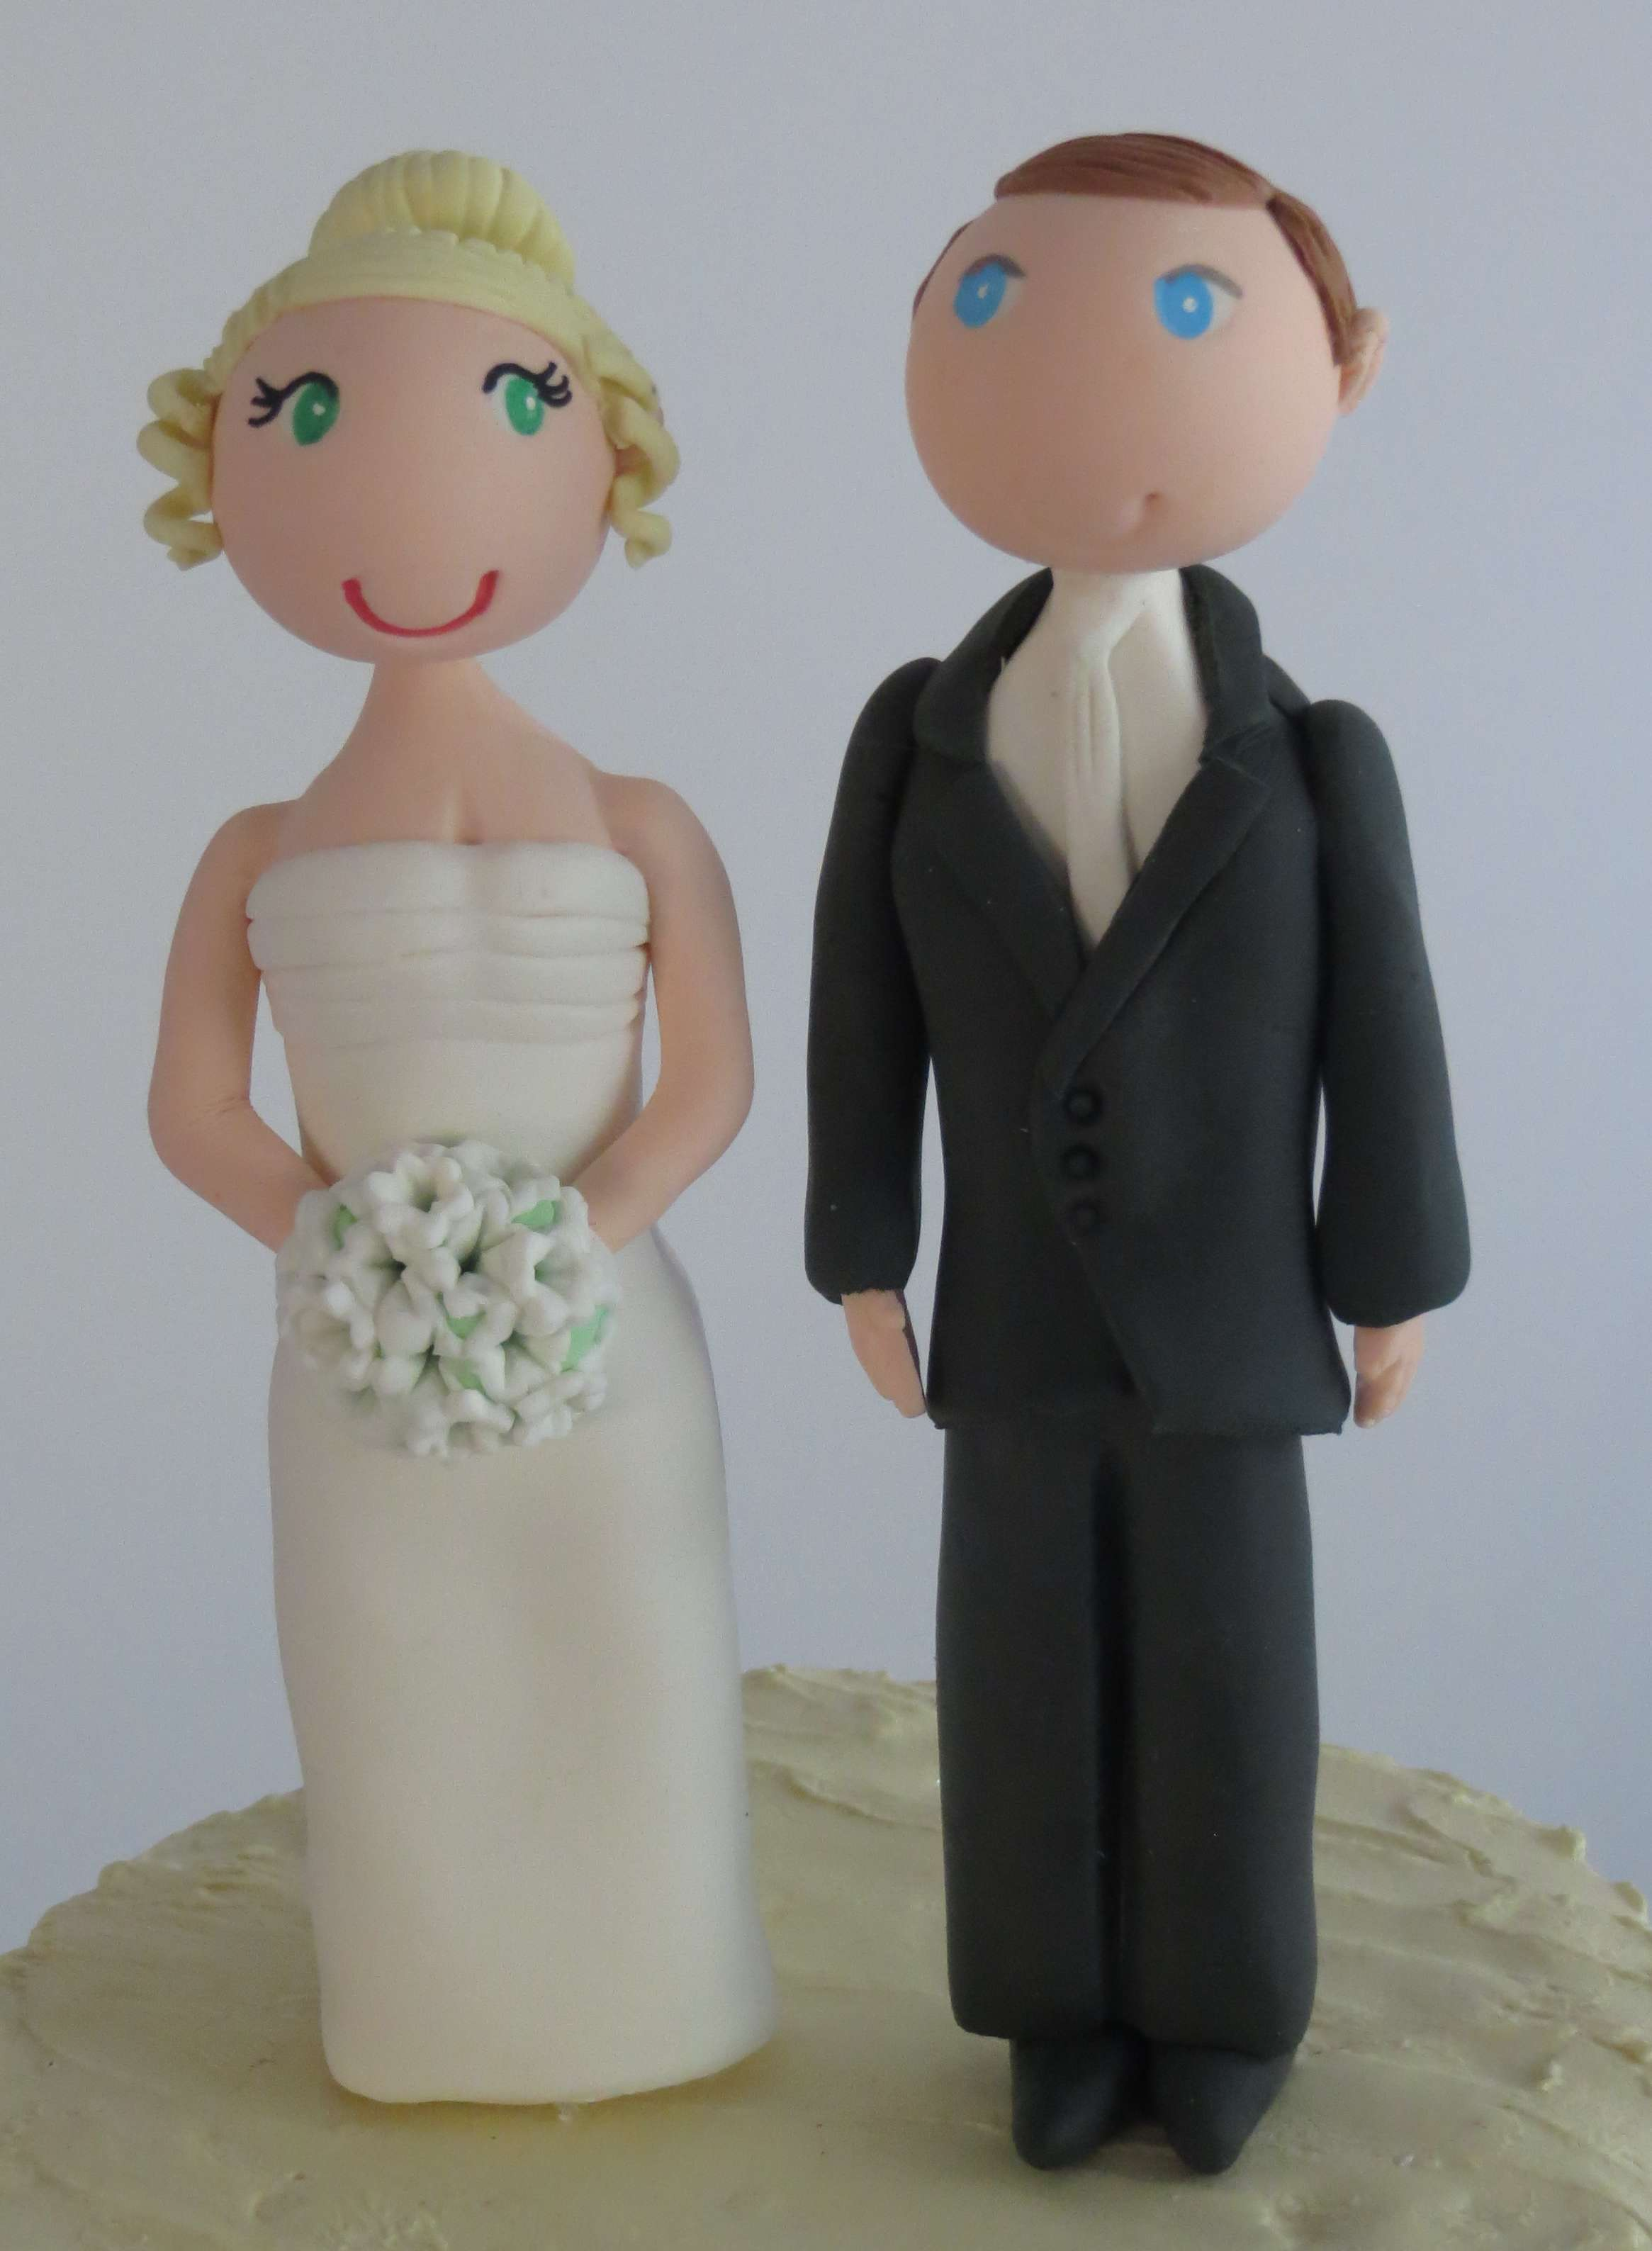 Standard Wedding Cake Toppers (Minimal Customisation )CLEARANCE SALE! A